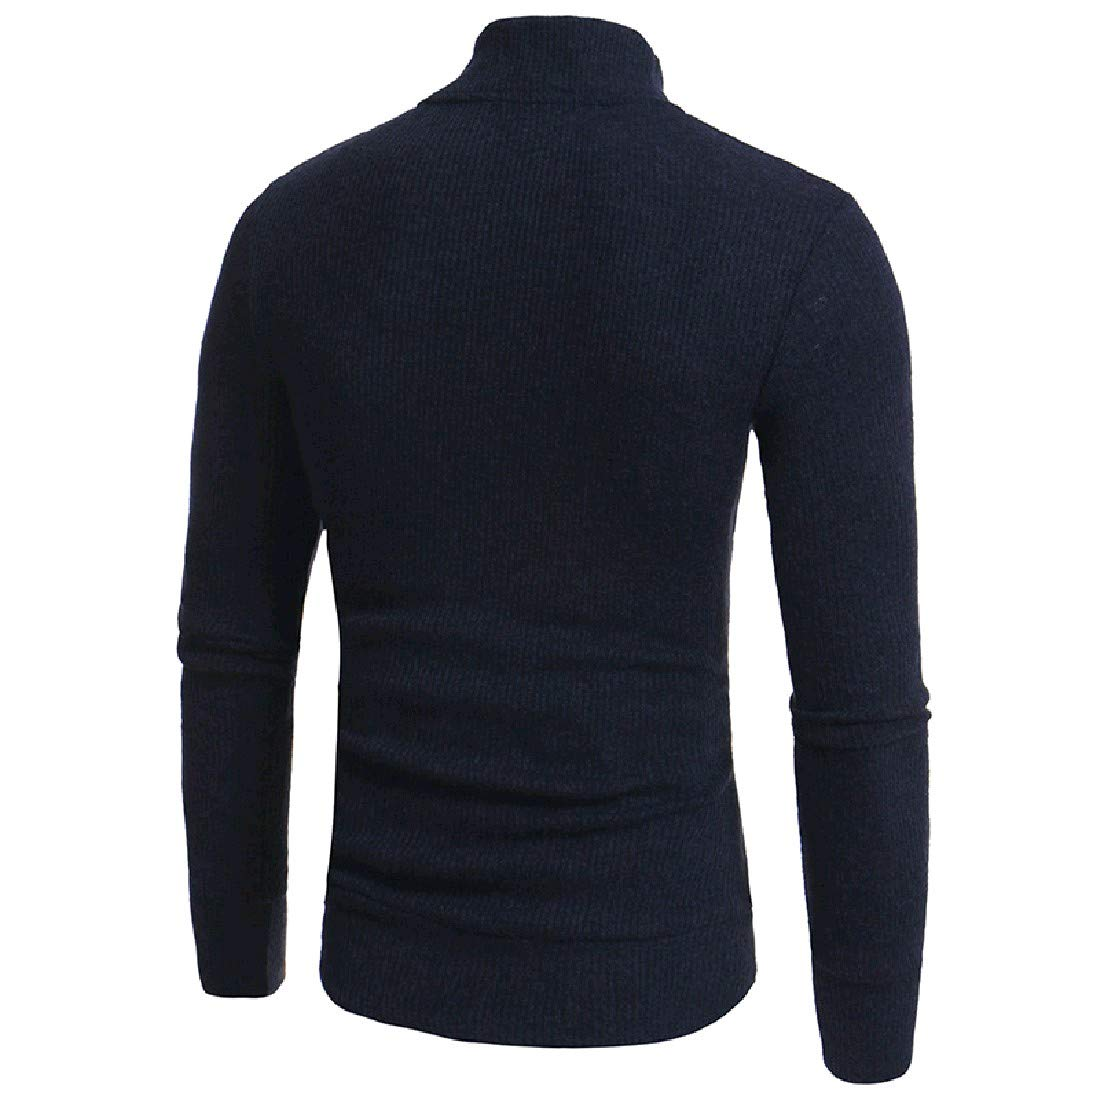 YUNY Mens Turtleneck Knitting Plus Size Warm Pullover Sweater Navy Blue 2XL